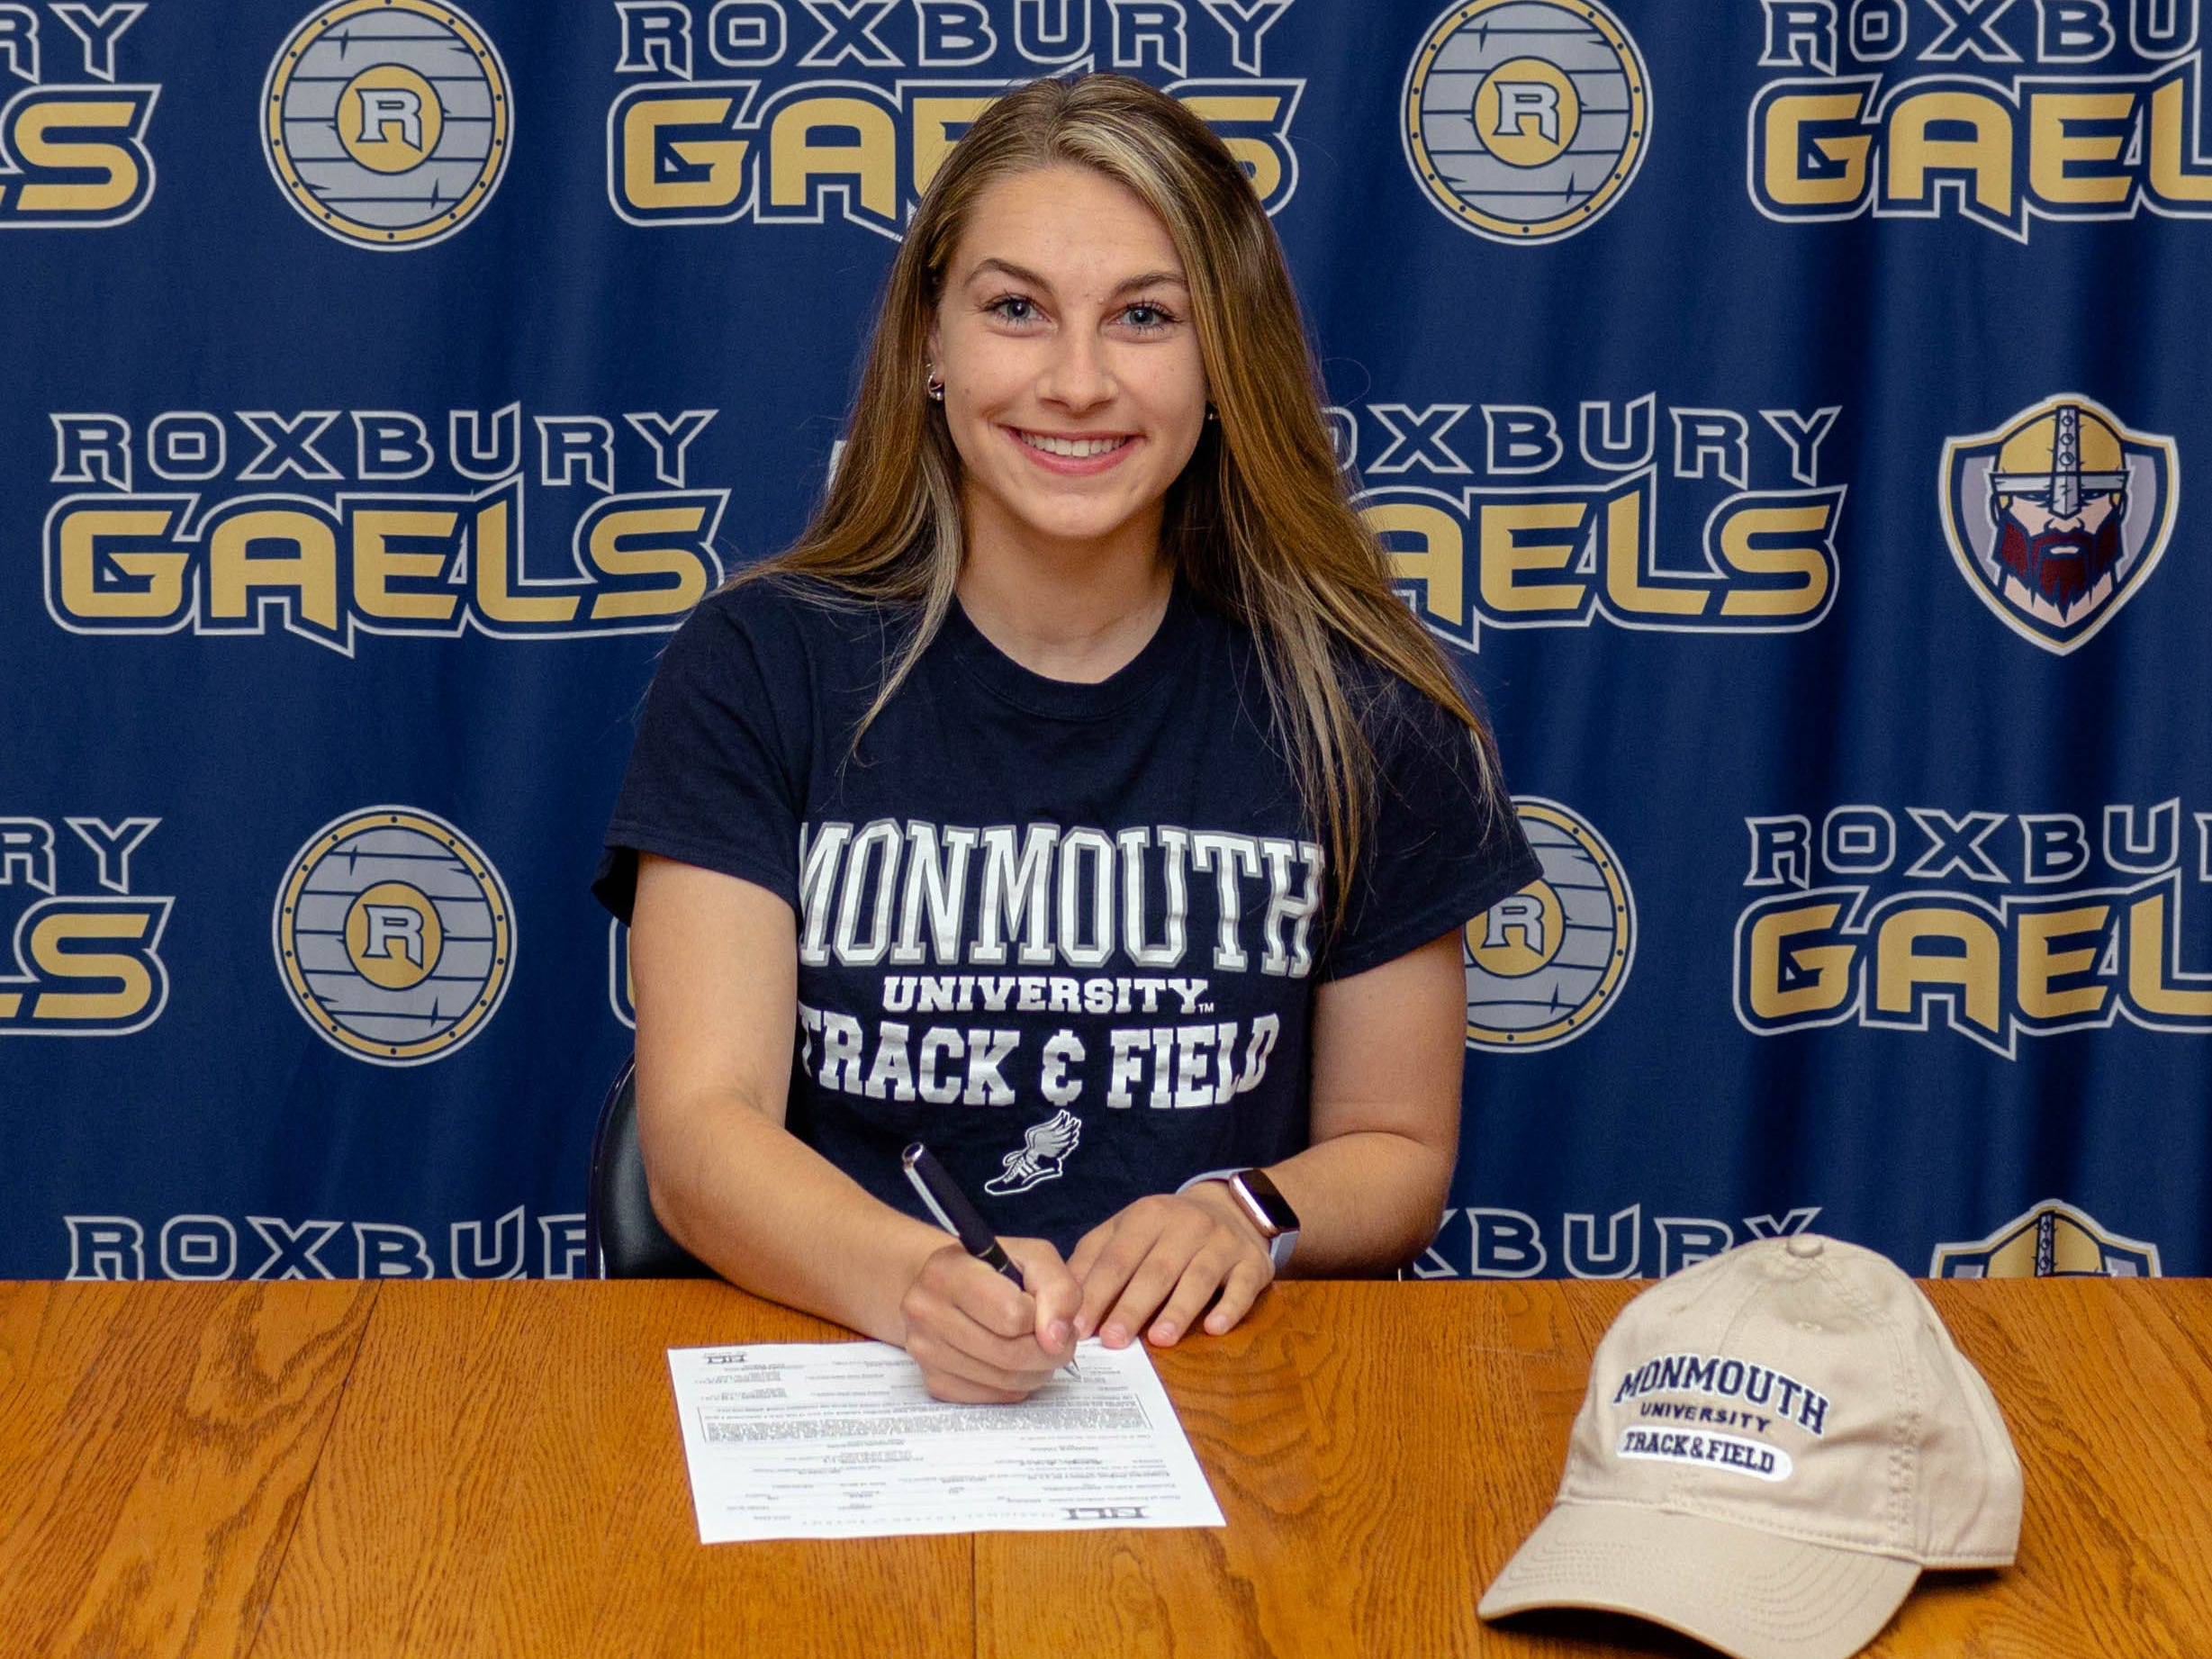 Roxbury senior Jordan Morris signed a National Letter of Intent with Monmouth track and field on Friday.